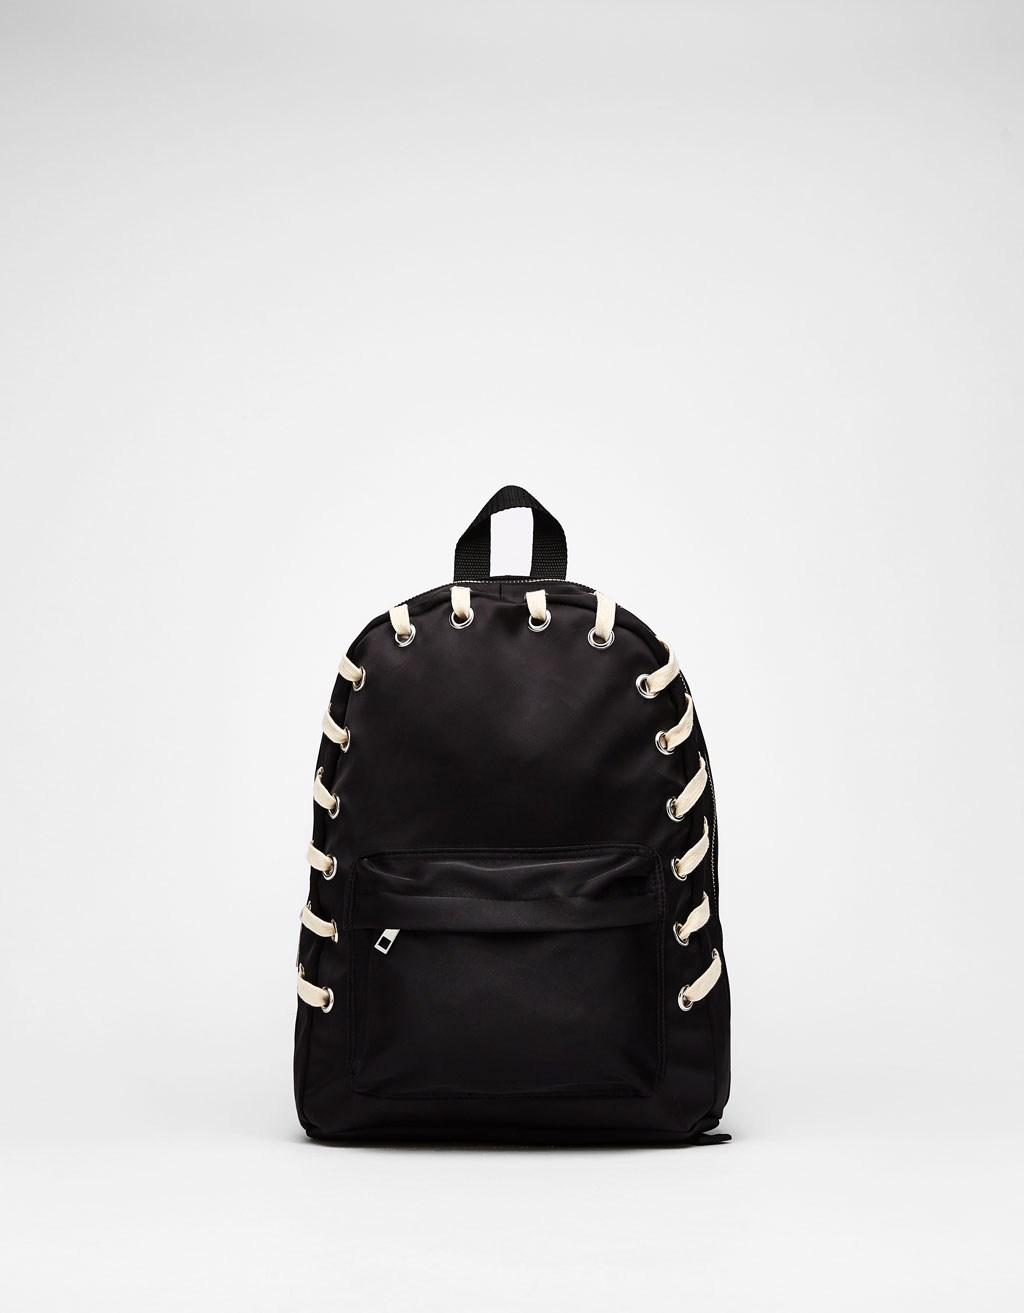 Lace-up backpack